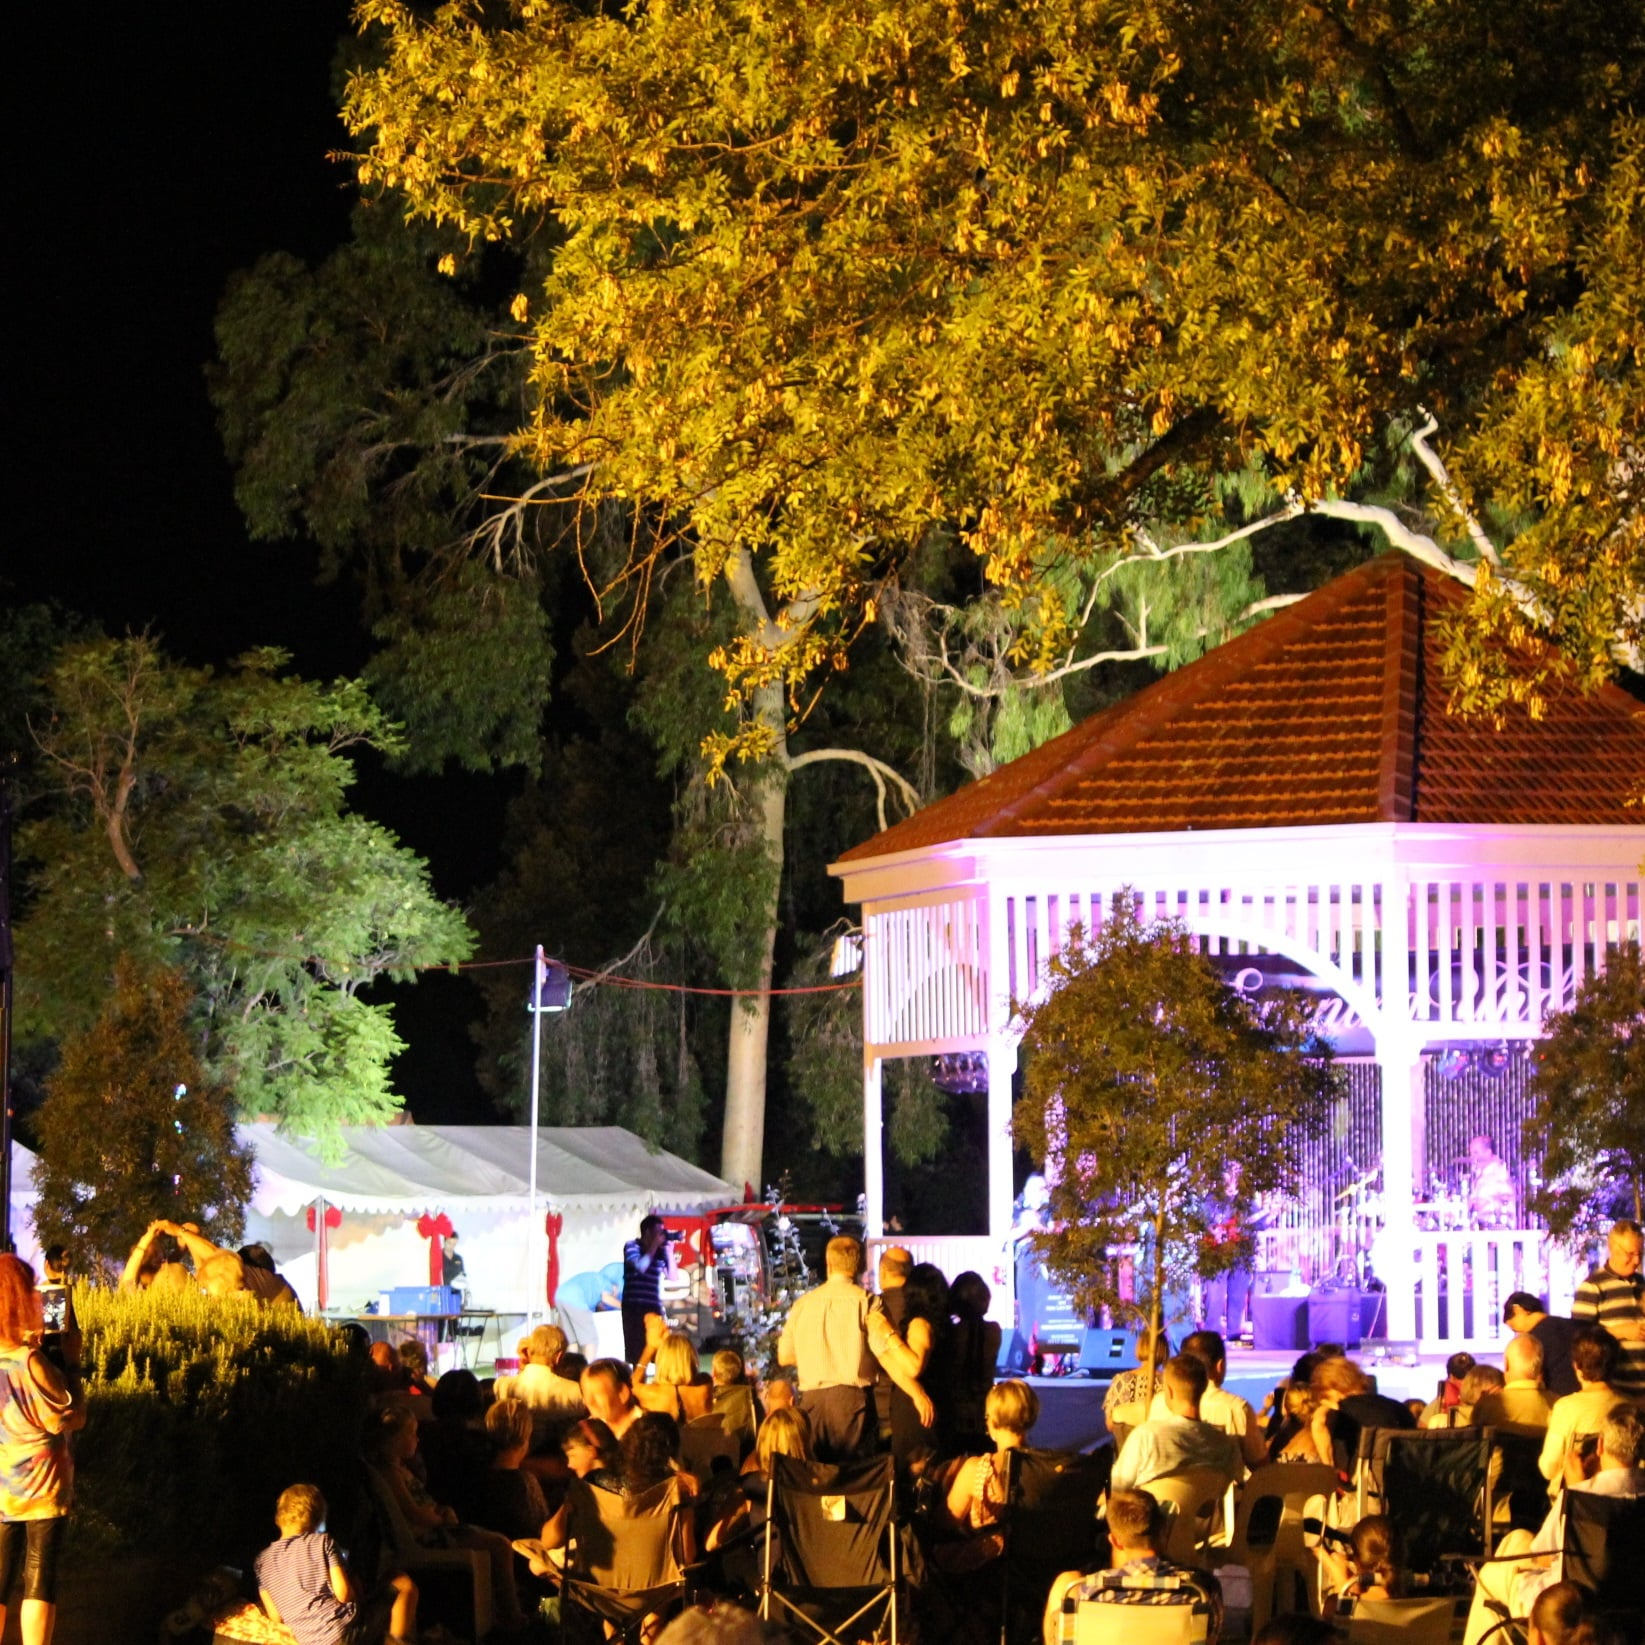 Unley traders event marquees for catering